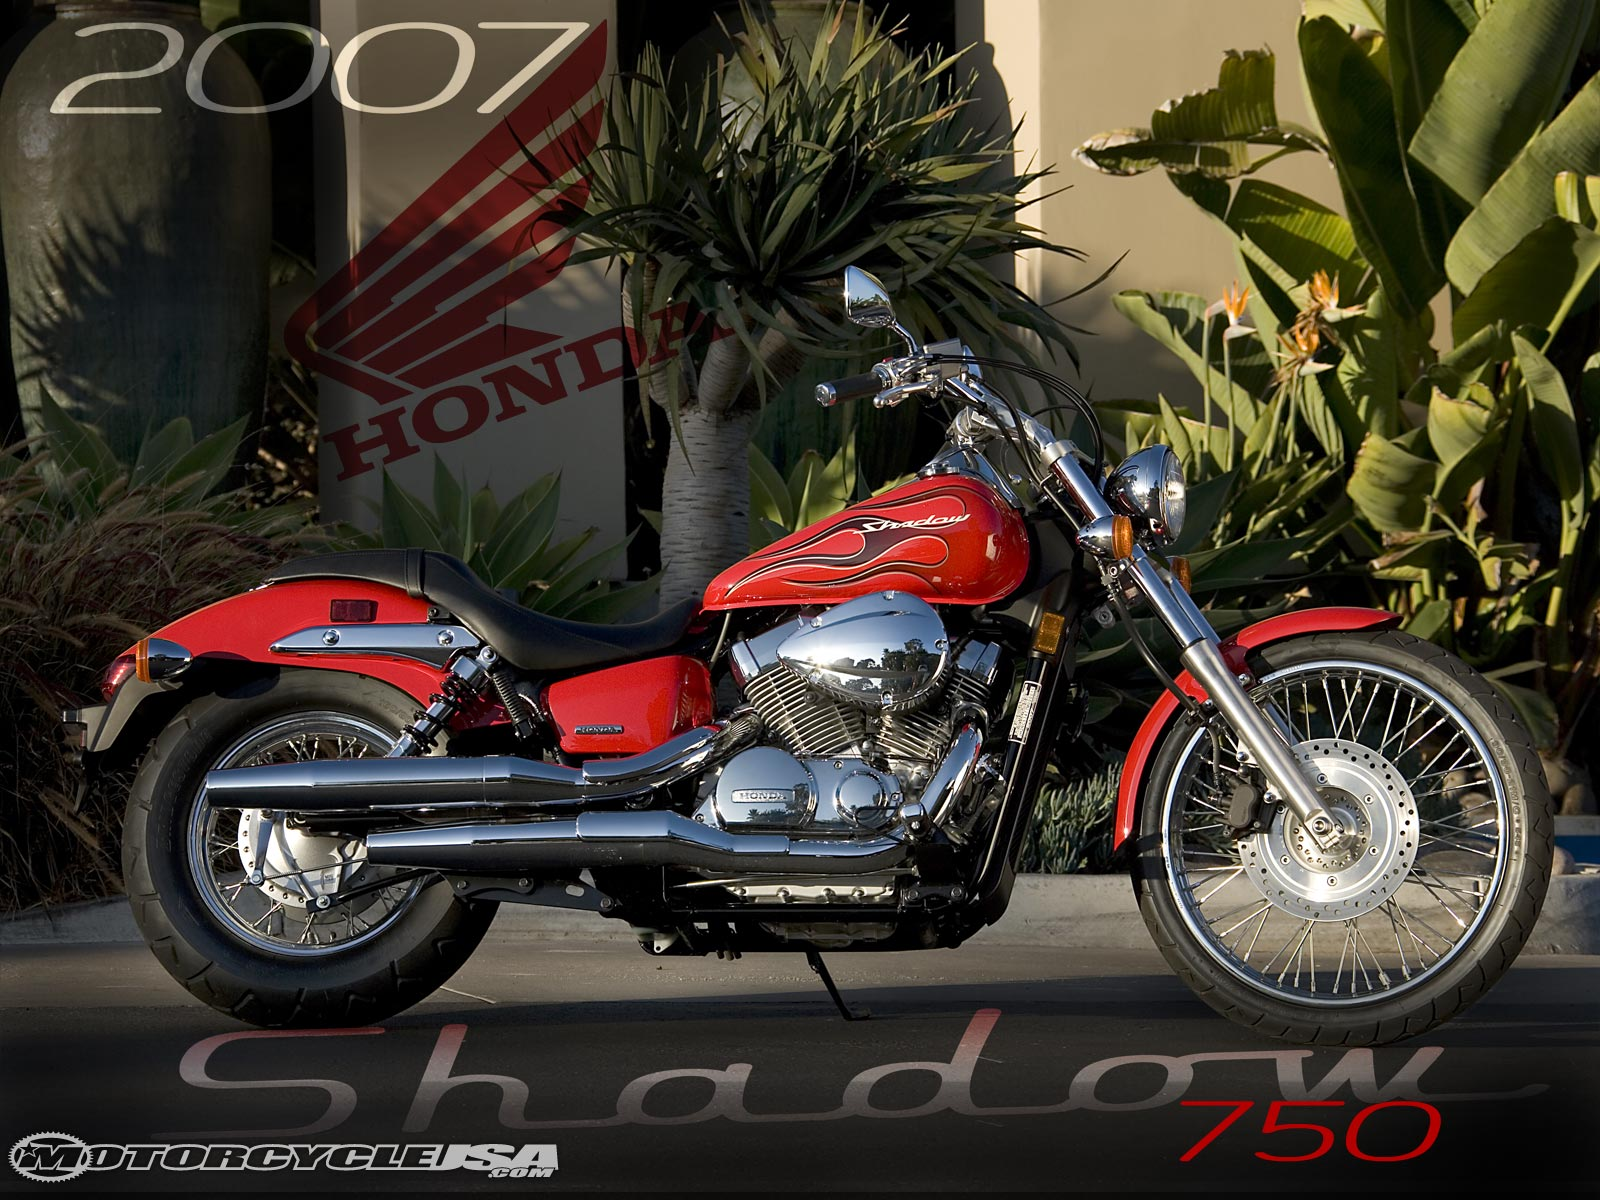 Honda Shadow Spirit 750 images #83825